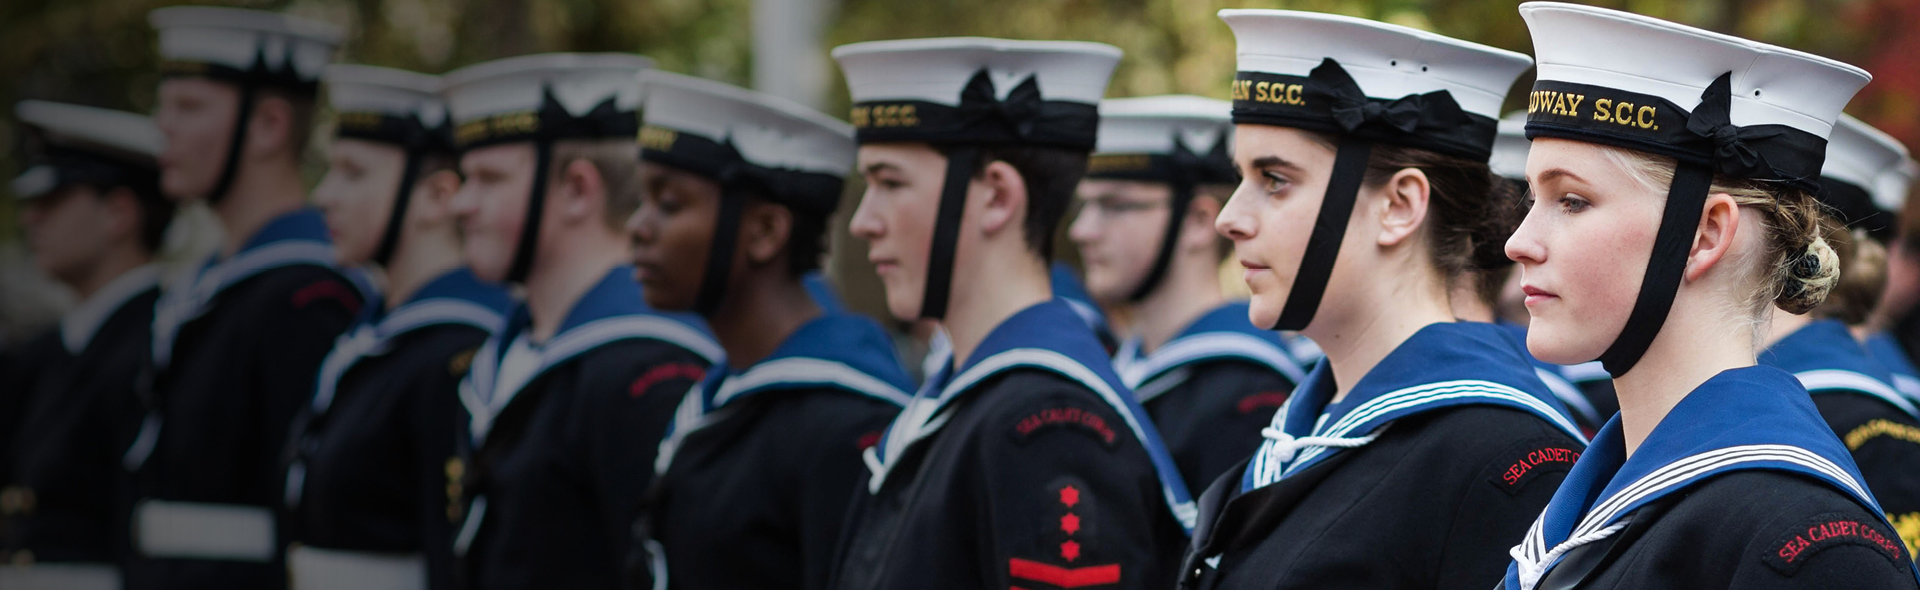 Sea Cadets stood in a line.